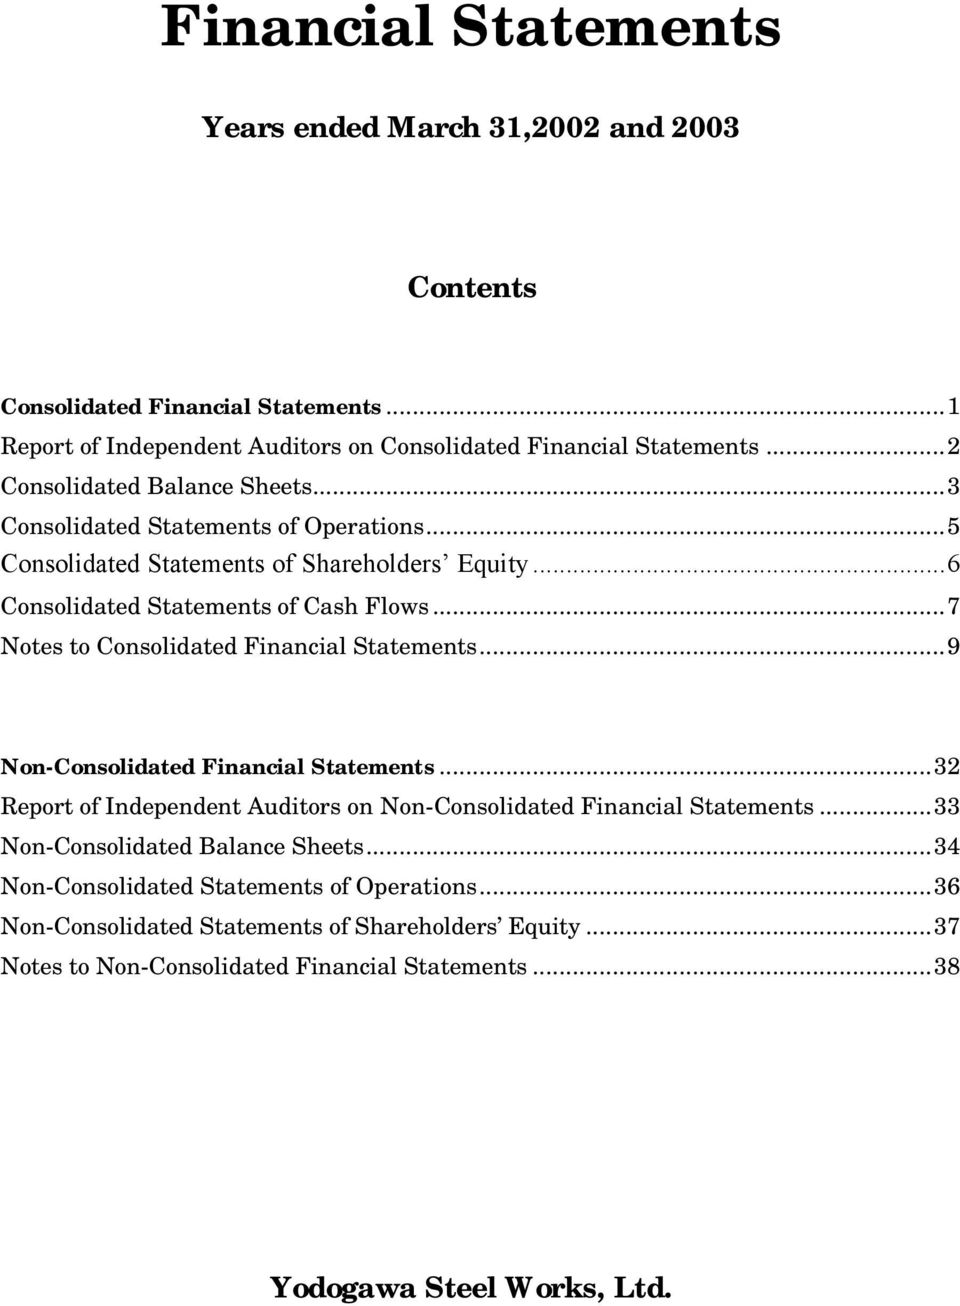 ..7 Notes to Consolidated Financial Statements...9 Non-Consolidated Financial Statements...32 Report of Independent Auditors on Non-Consolidated Financial Statements.